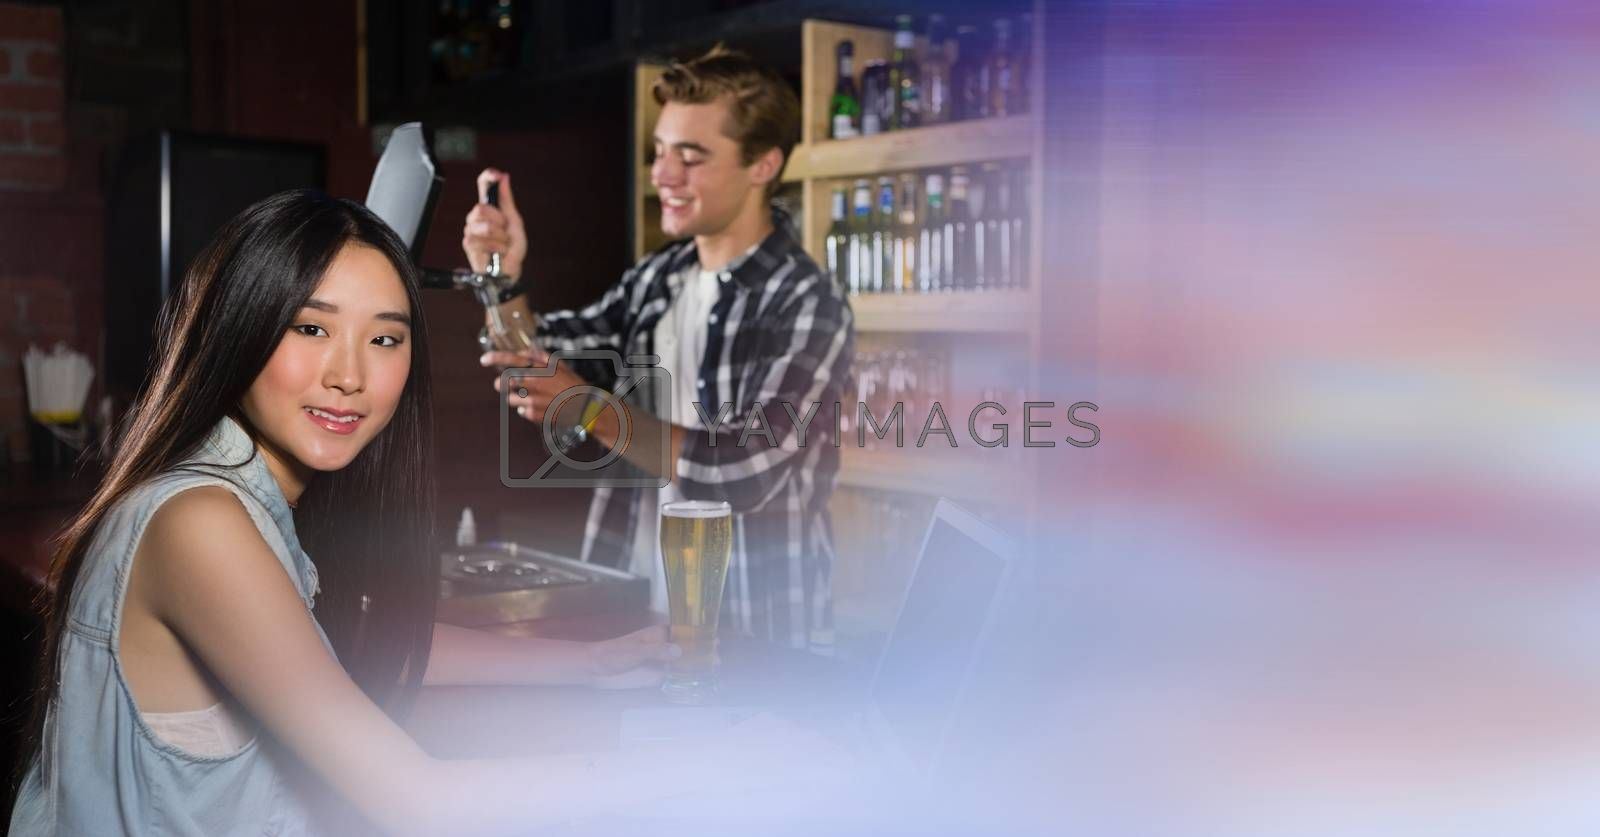 Digital composite of people at bar with transition